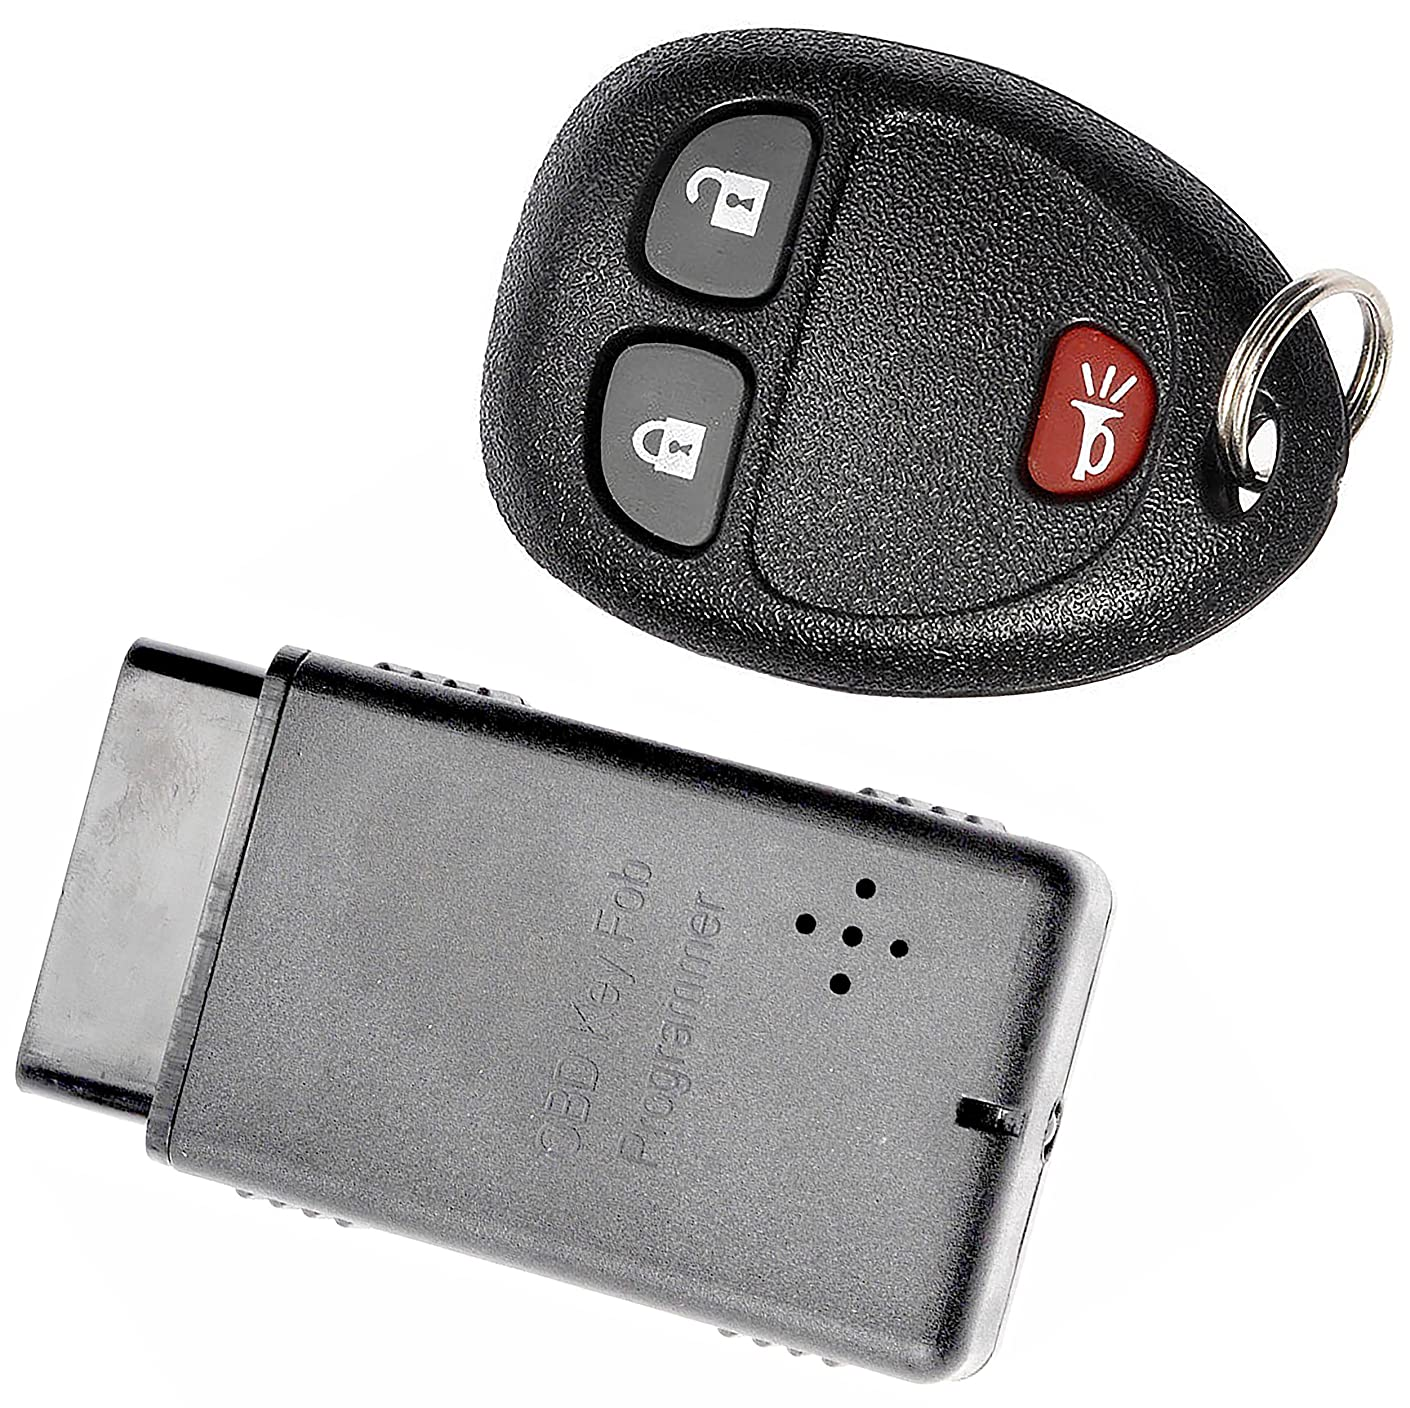 APDTY 24848 Keyless Entry Remote Key Fob Transmitter w/Programming Tool Fits Select Buick Terraza Chevrolet HHR Uplander Pontiac Montana Saturn Relay (Replacement For GM 15777636 Only!!)